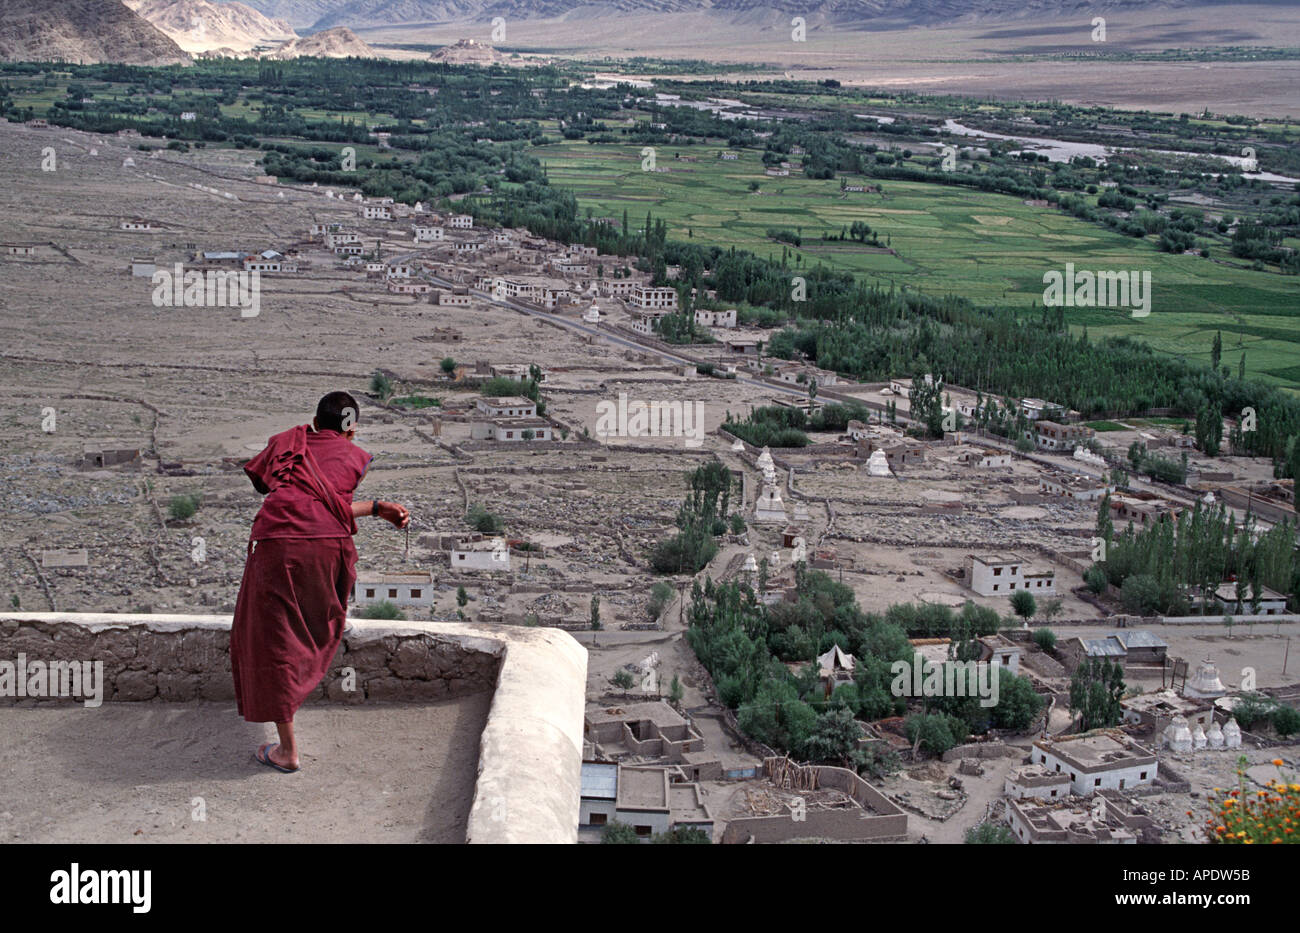 A young monk surveys the irrigated otherwise barren landscape of the surrounding valley near Leh Ladakh - Stock Image